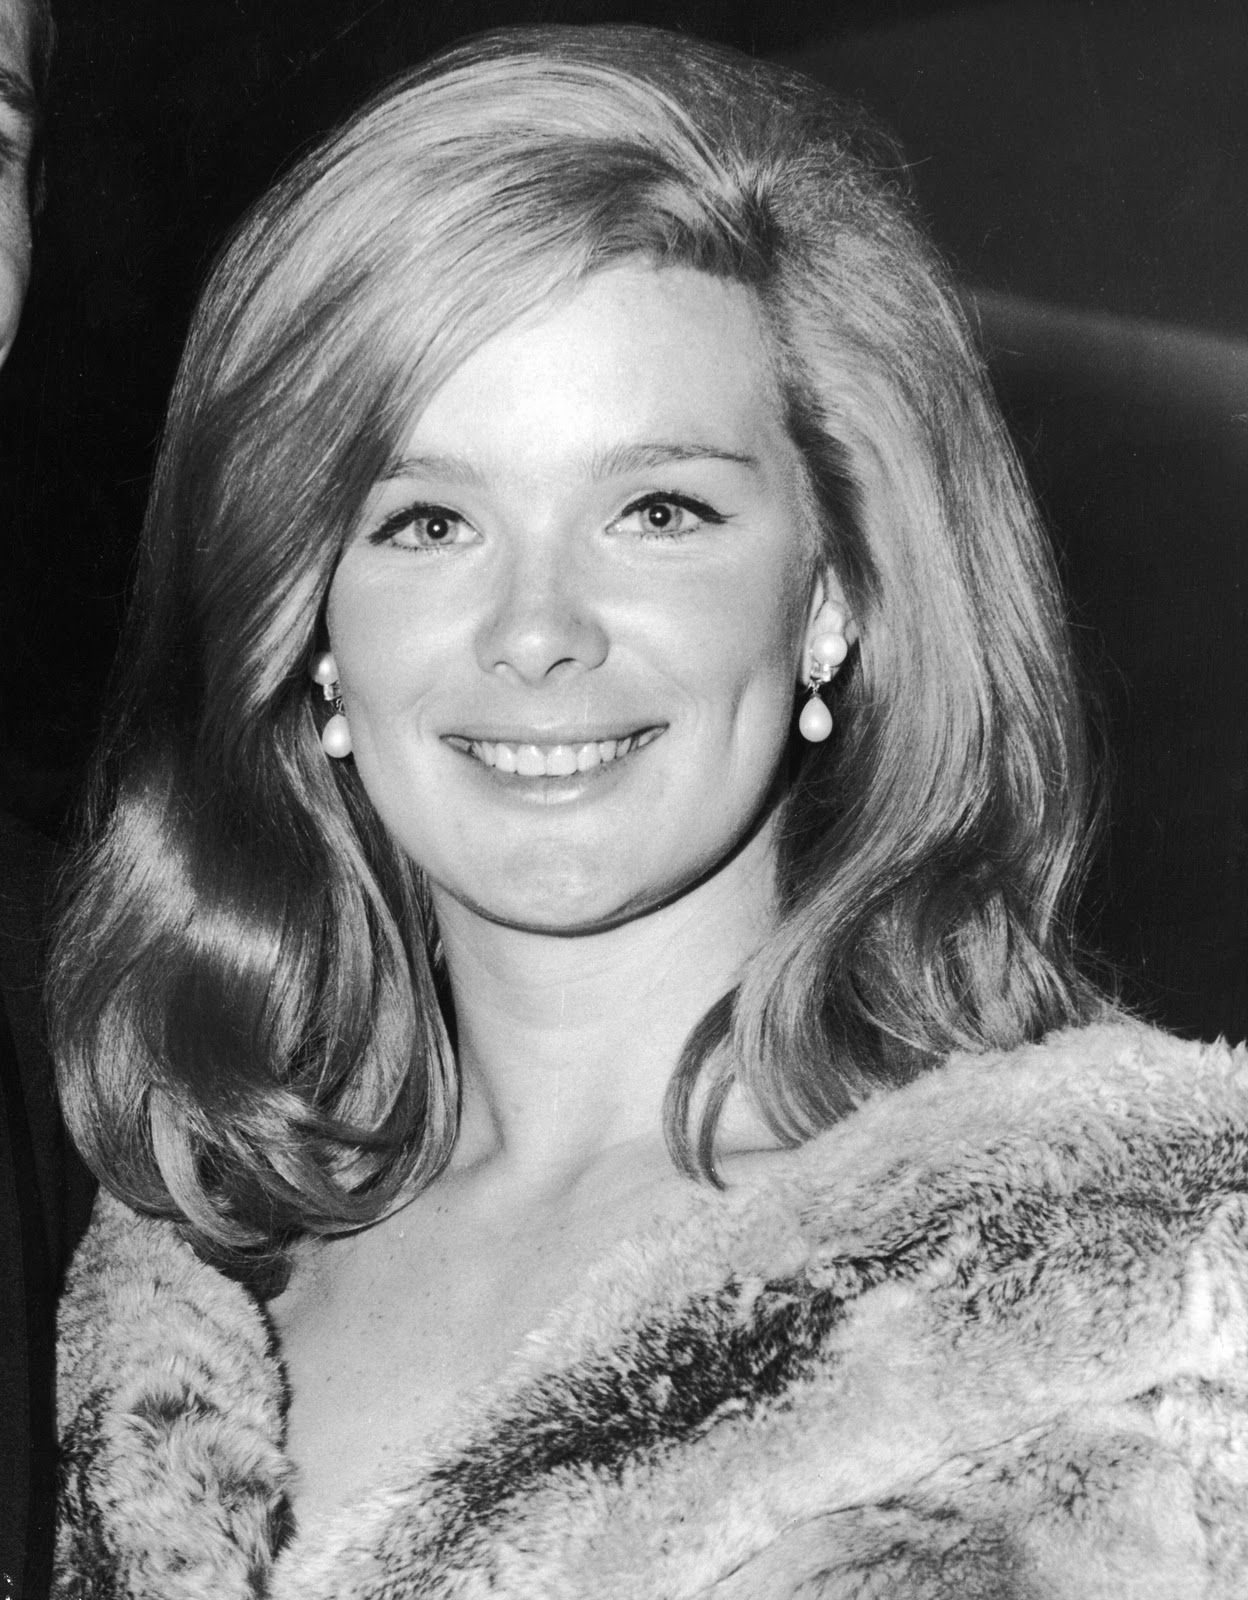 Communication on this topic: Laura Wright, linda-evans-born-november-18-1942-age/